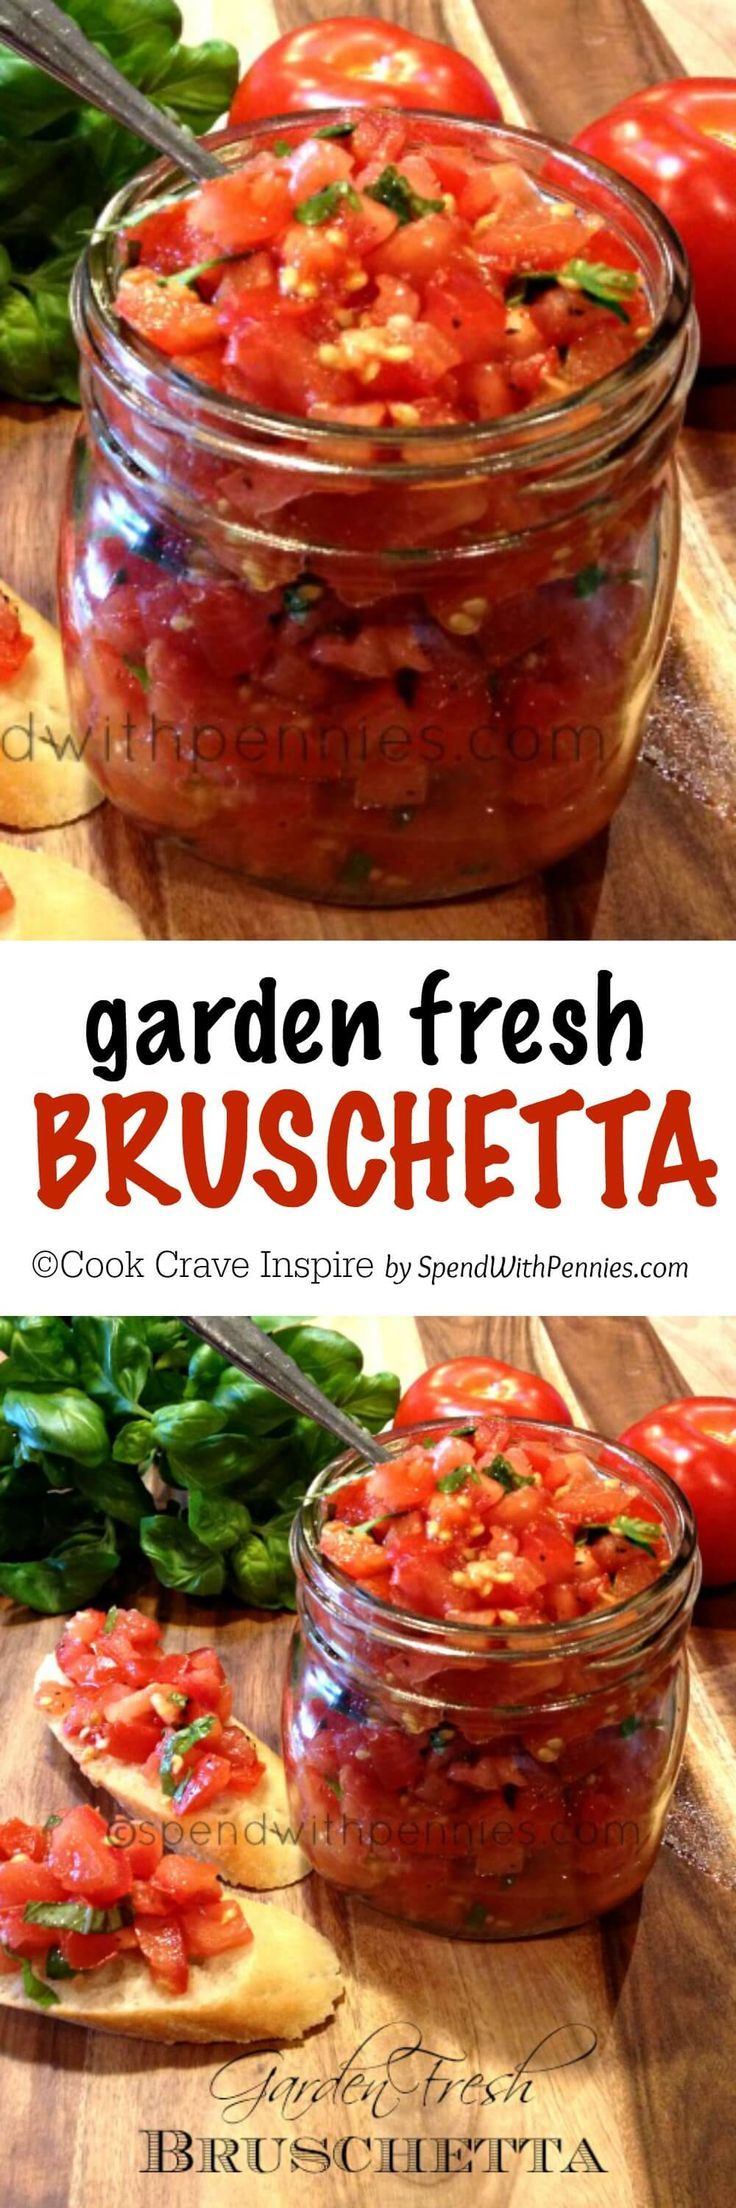 Garden Fresh Bruschetta! Perfect summer appetizer and deliciously simple to make! Perfect as an appetizer & great over chicken. Use the best tomatoes you can find & fresh basil! #bruschetta